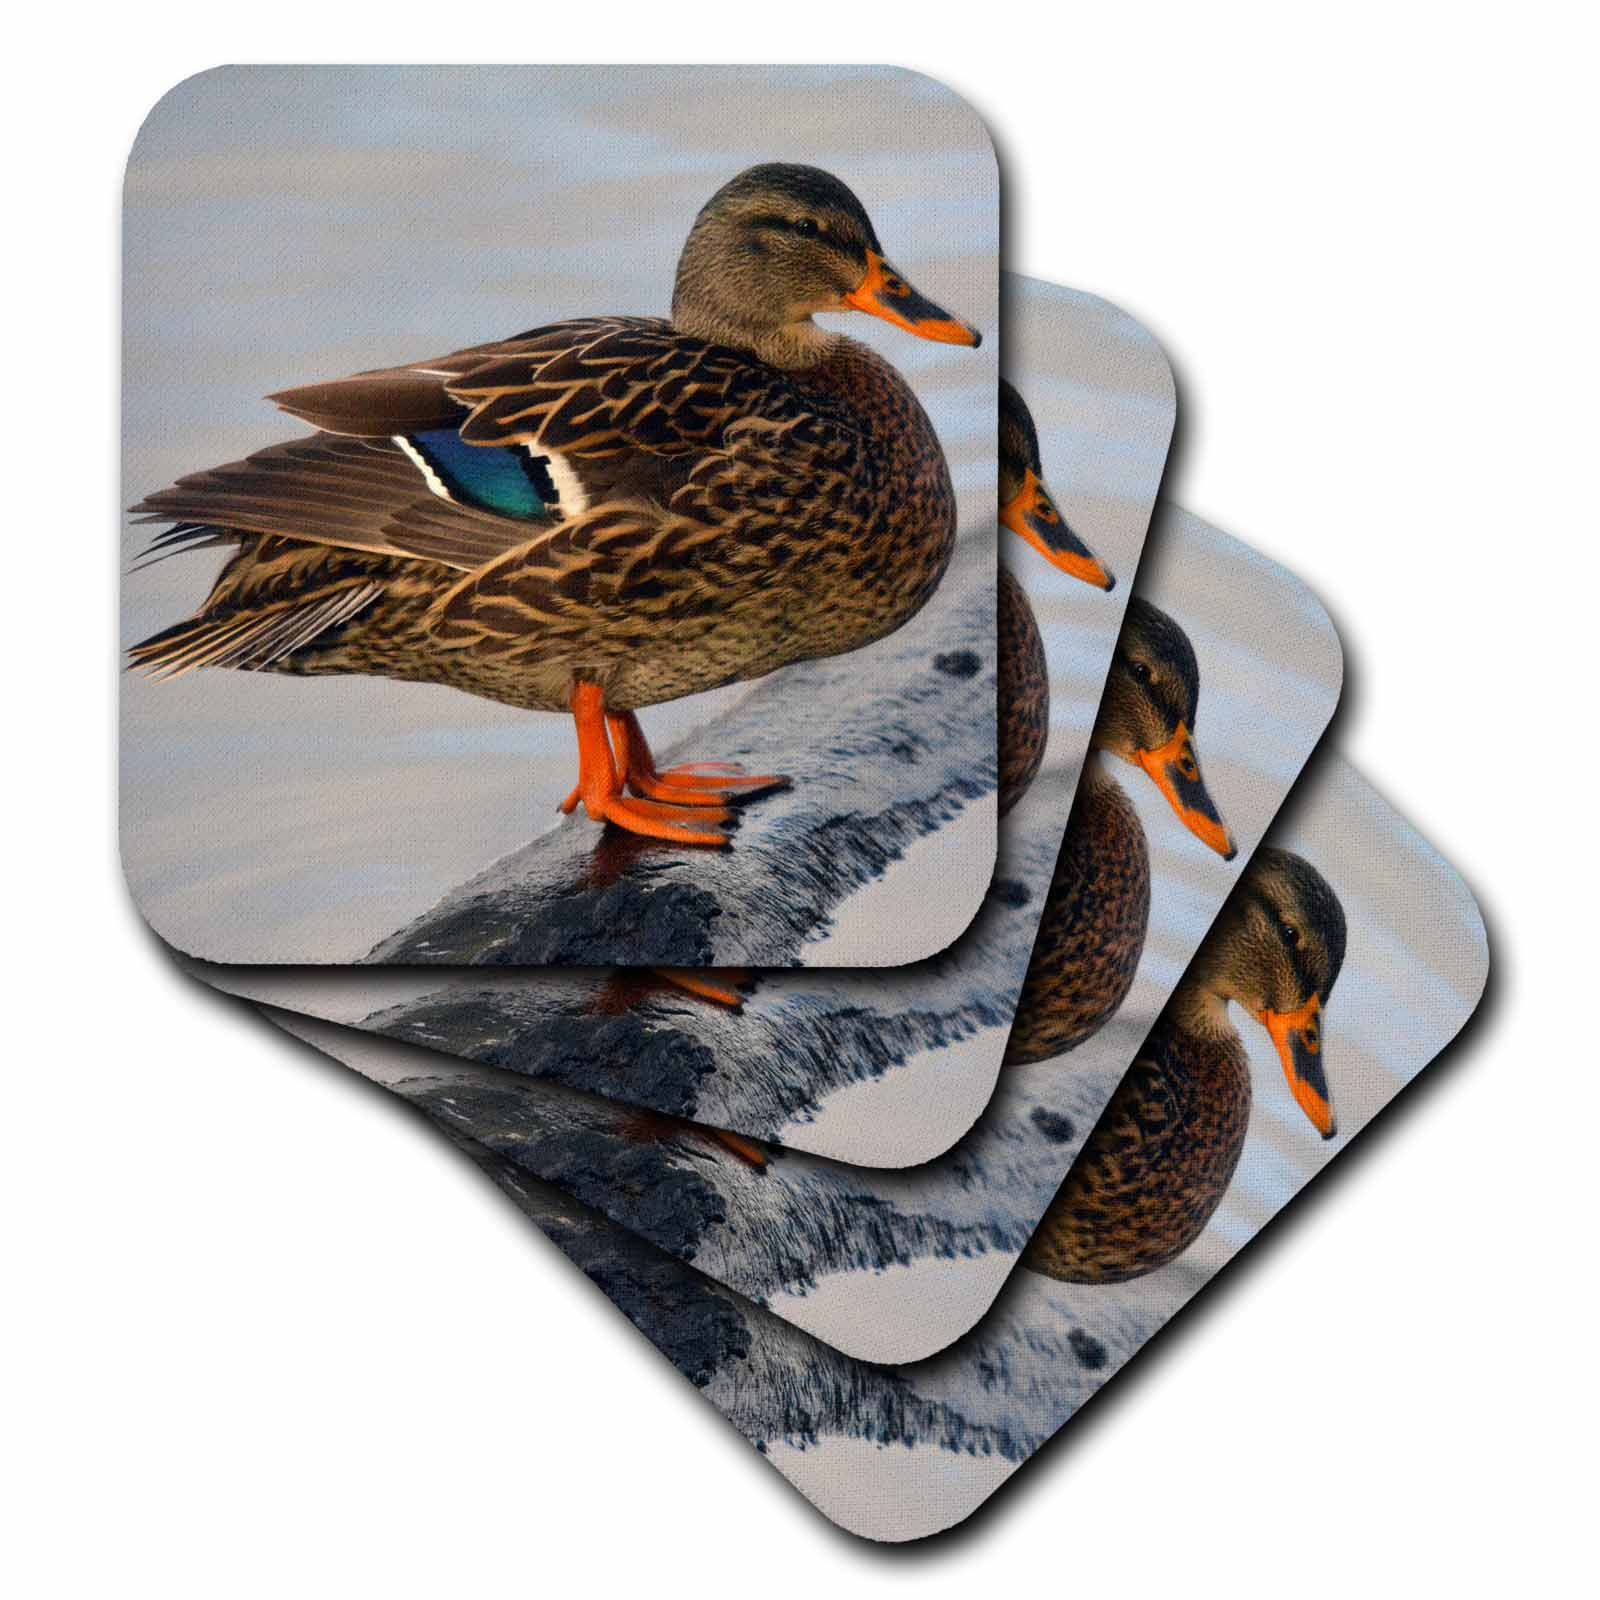 3dRose Female mallard at Crystal Springs Rhododendron Garden, Oregon, USA., Ceramic Tile Coasters, set of 4 by 3dRose